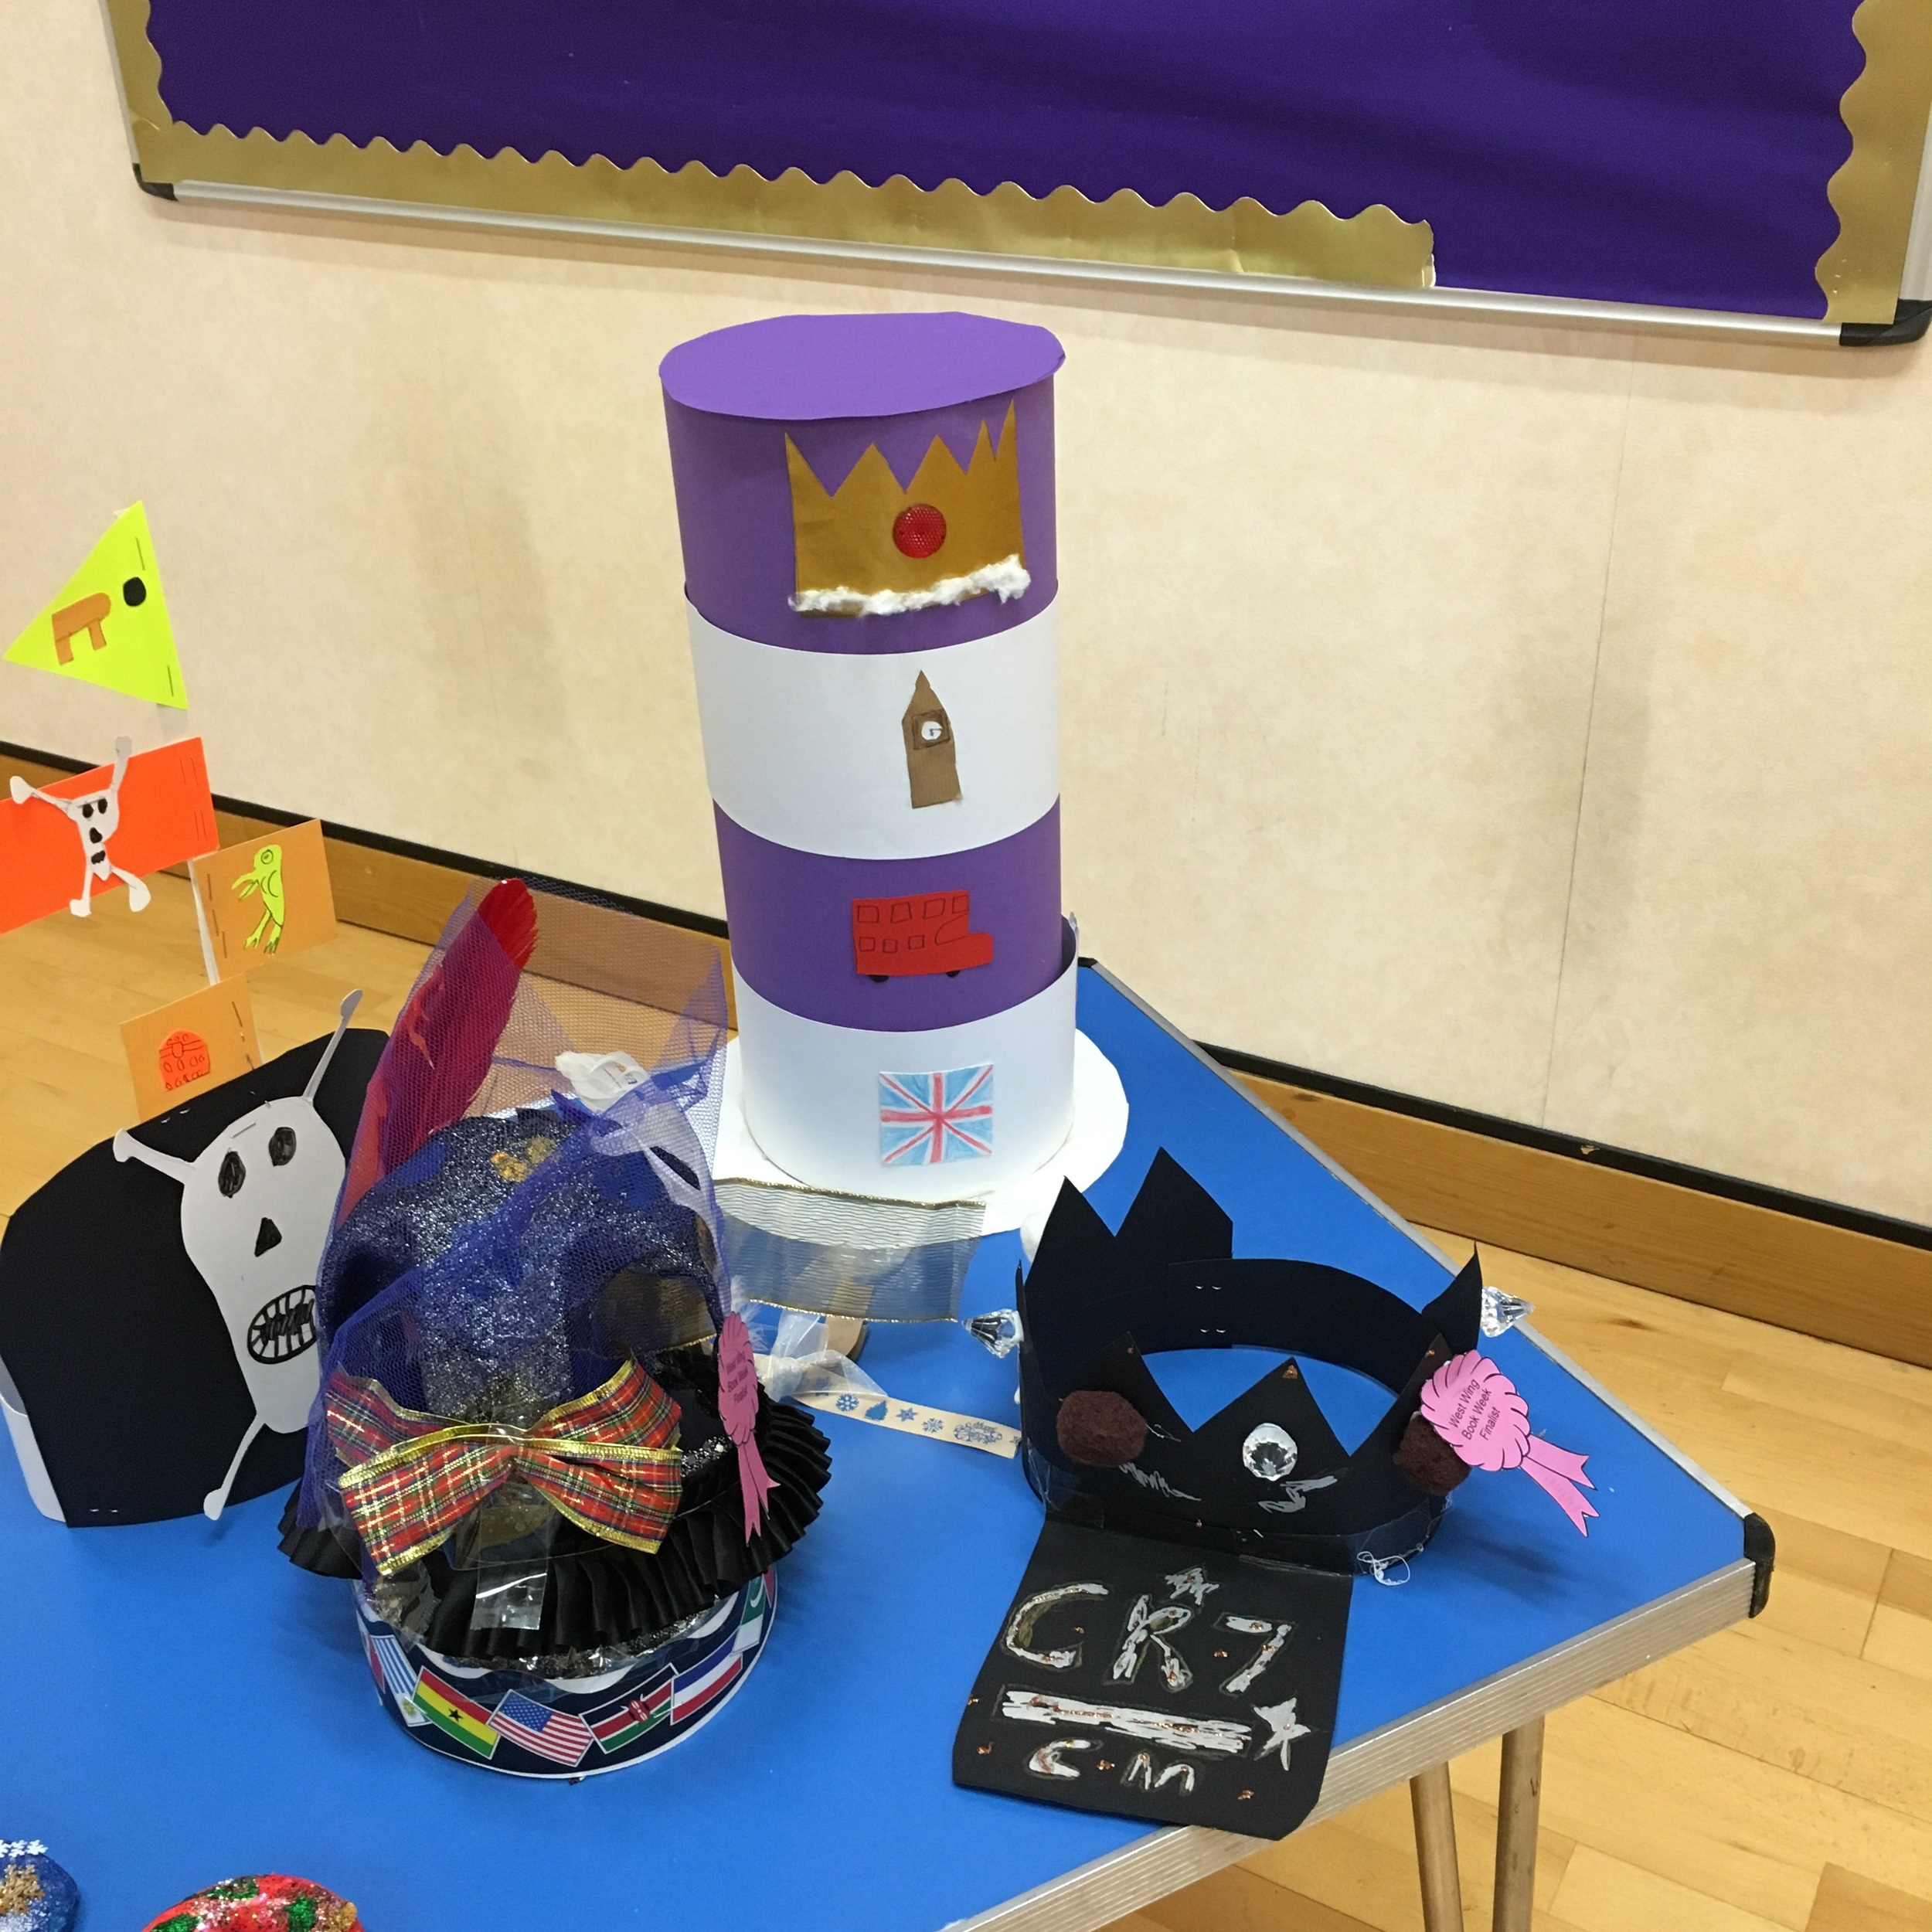 Another wing of the school made hats. These are the finalists' hats.